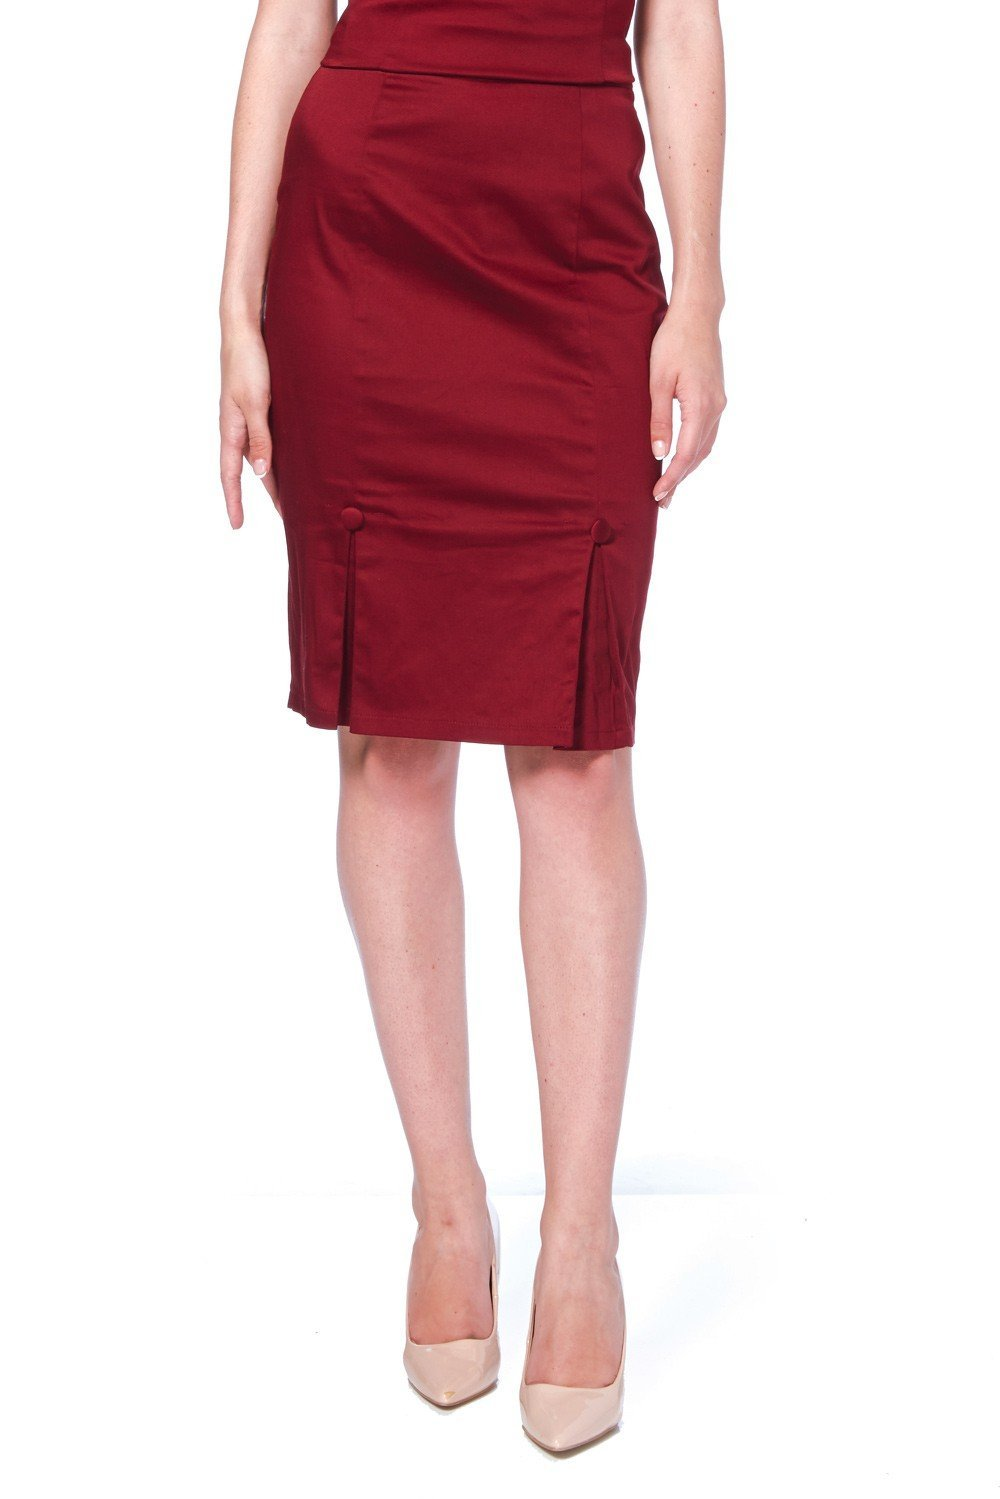 Voodoo Vixen Sandy Pencil Skirt - Bohemian Finds